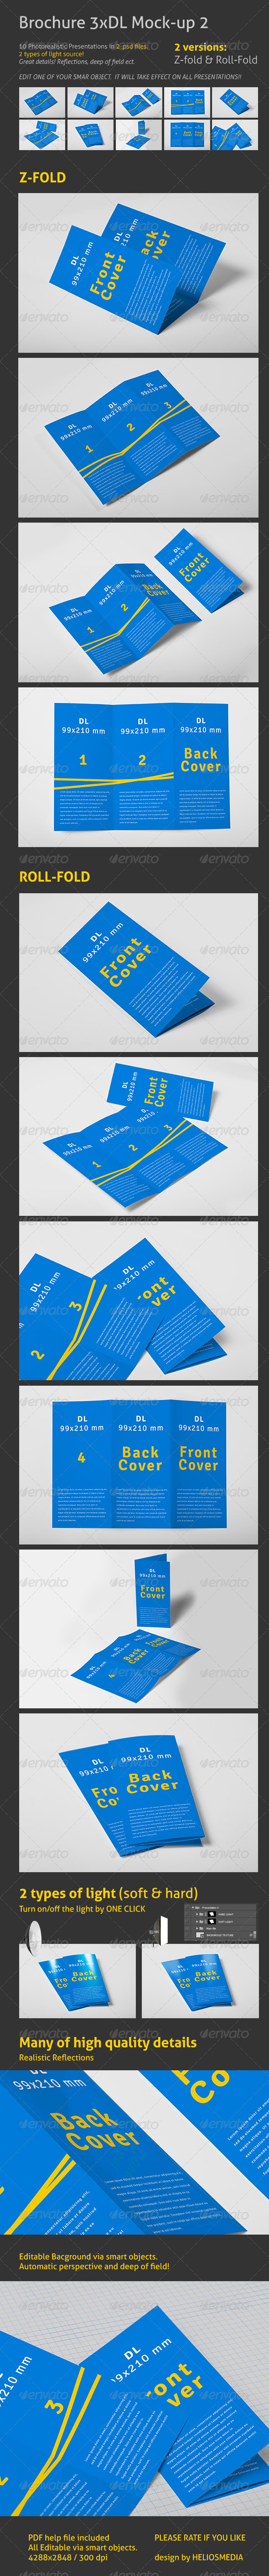 GraphicRiver Brochure 3xDL Mock-up 2 3958116